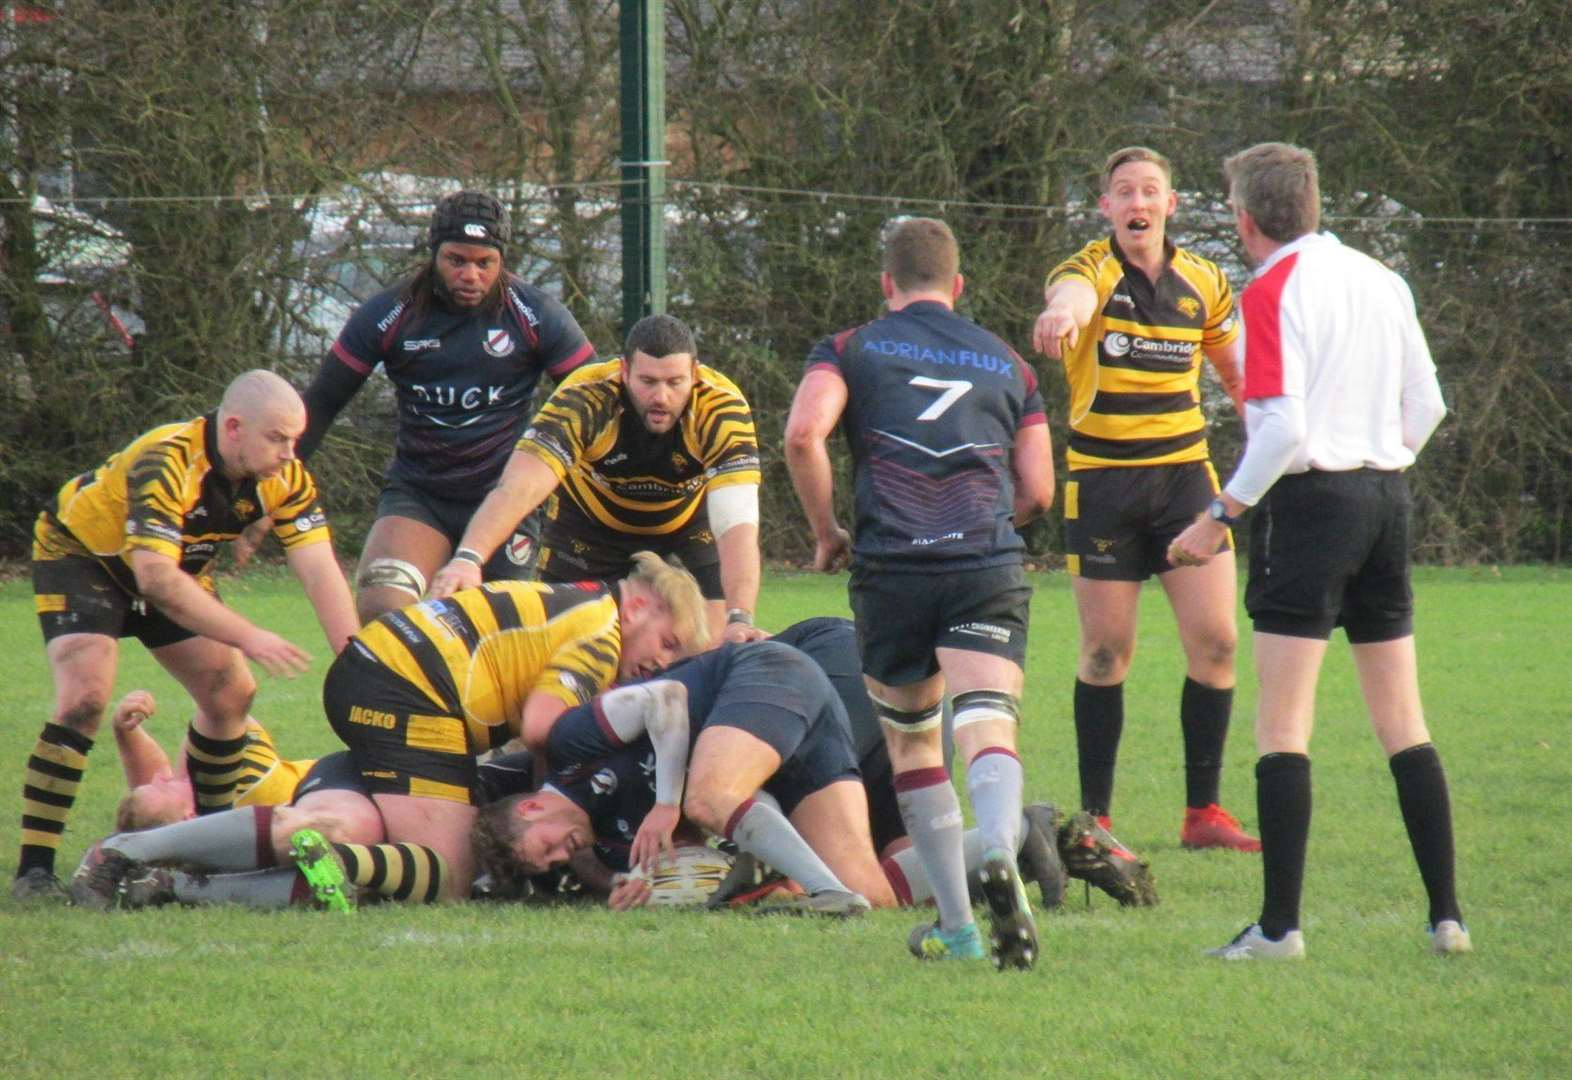 West Norfolk Rugby Club host A47 rivals Wisbech in weekend derby